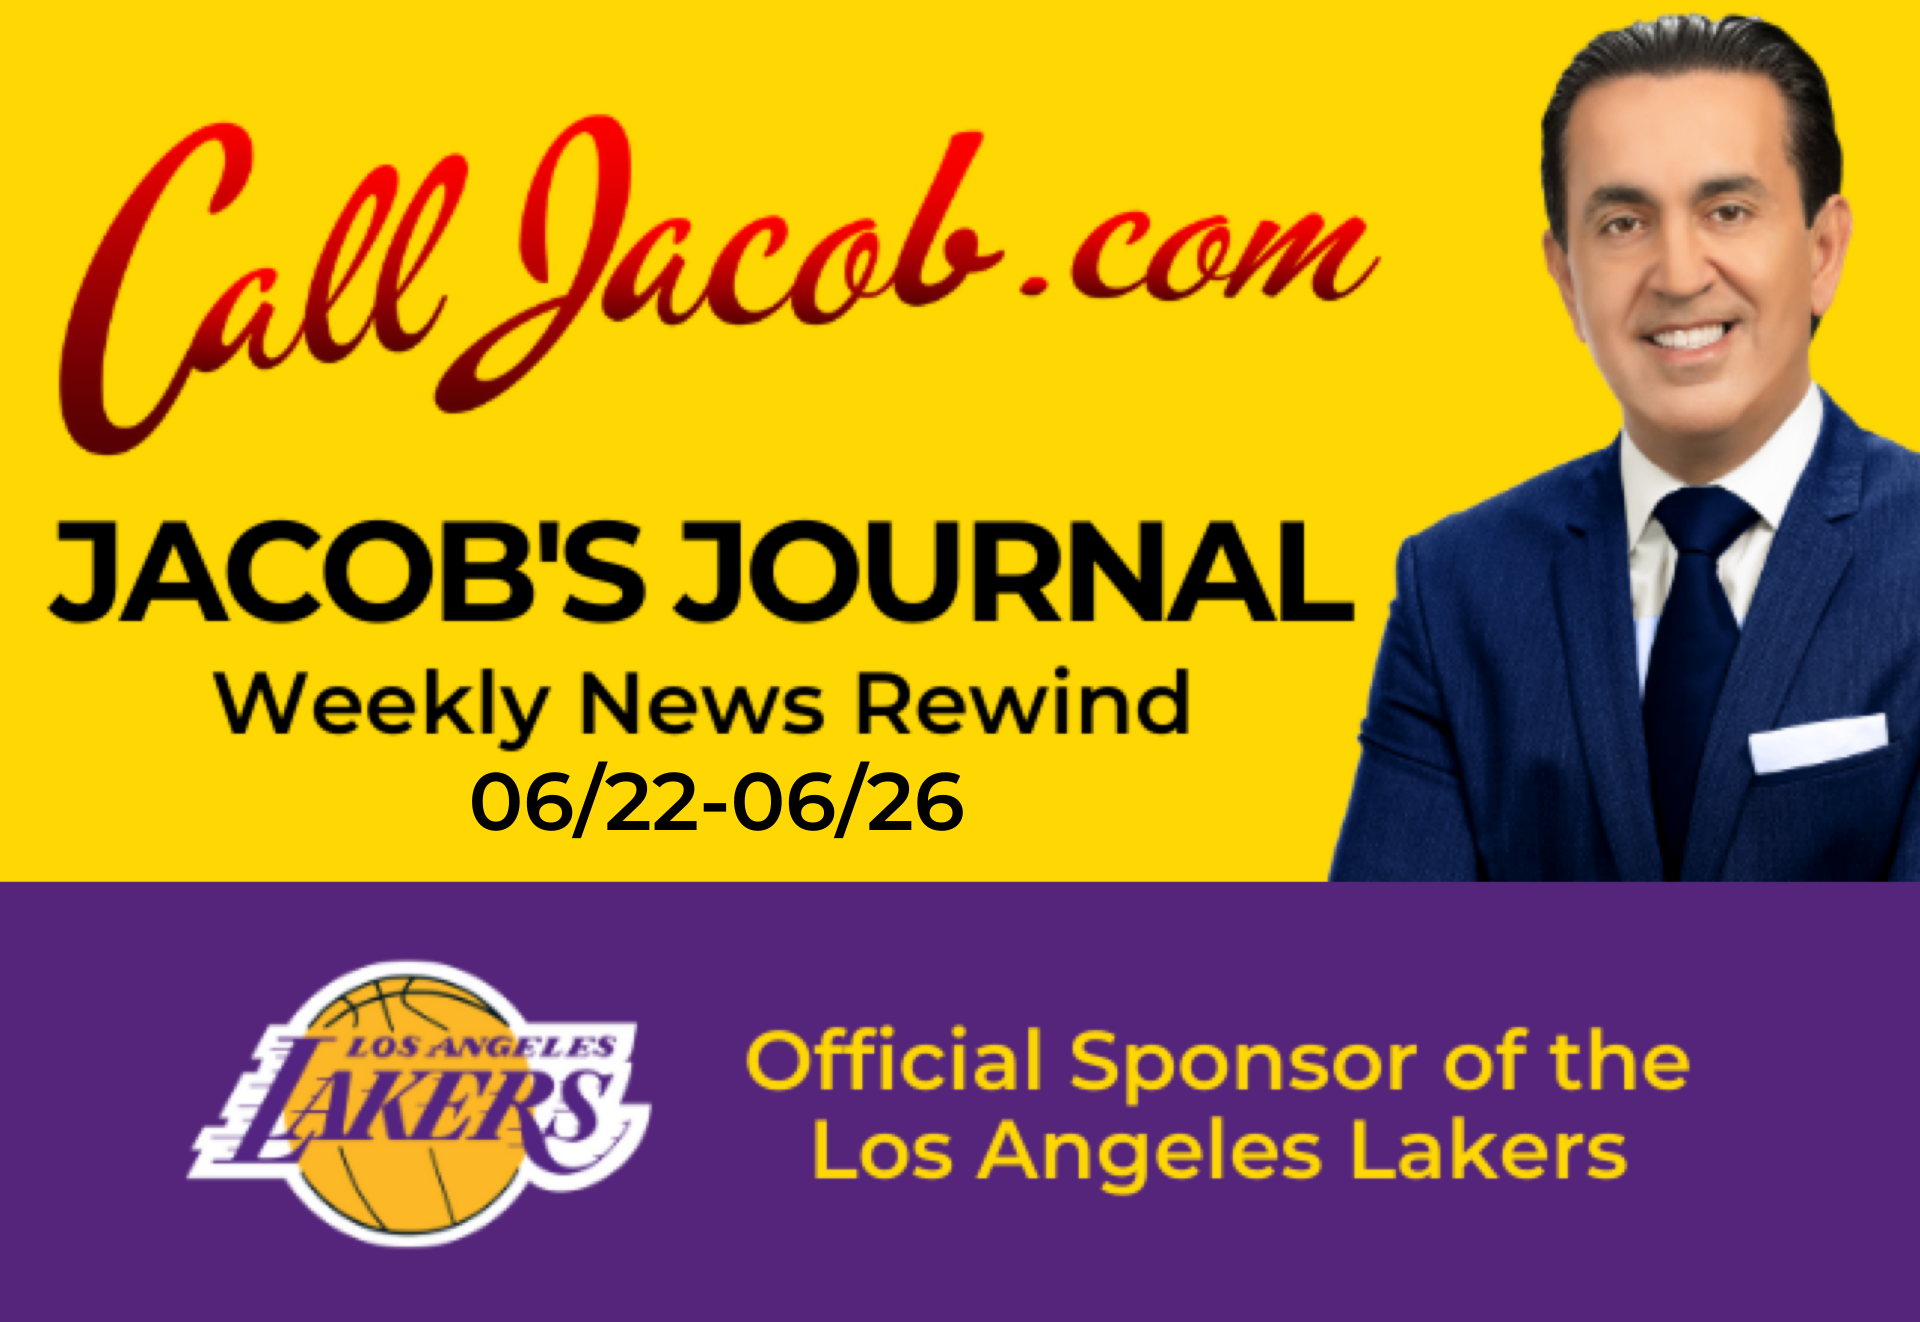 Jacobs Journal Weekly News Rewind June 22nd to June 26th